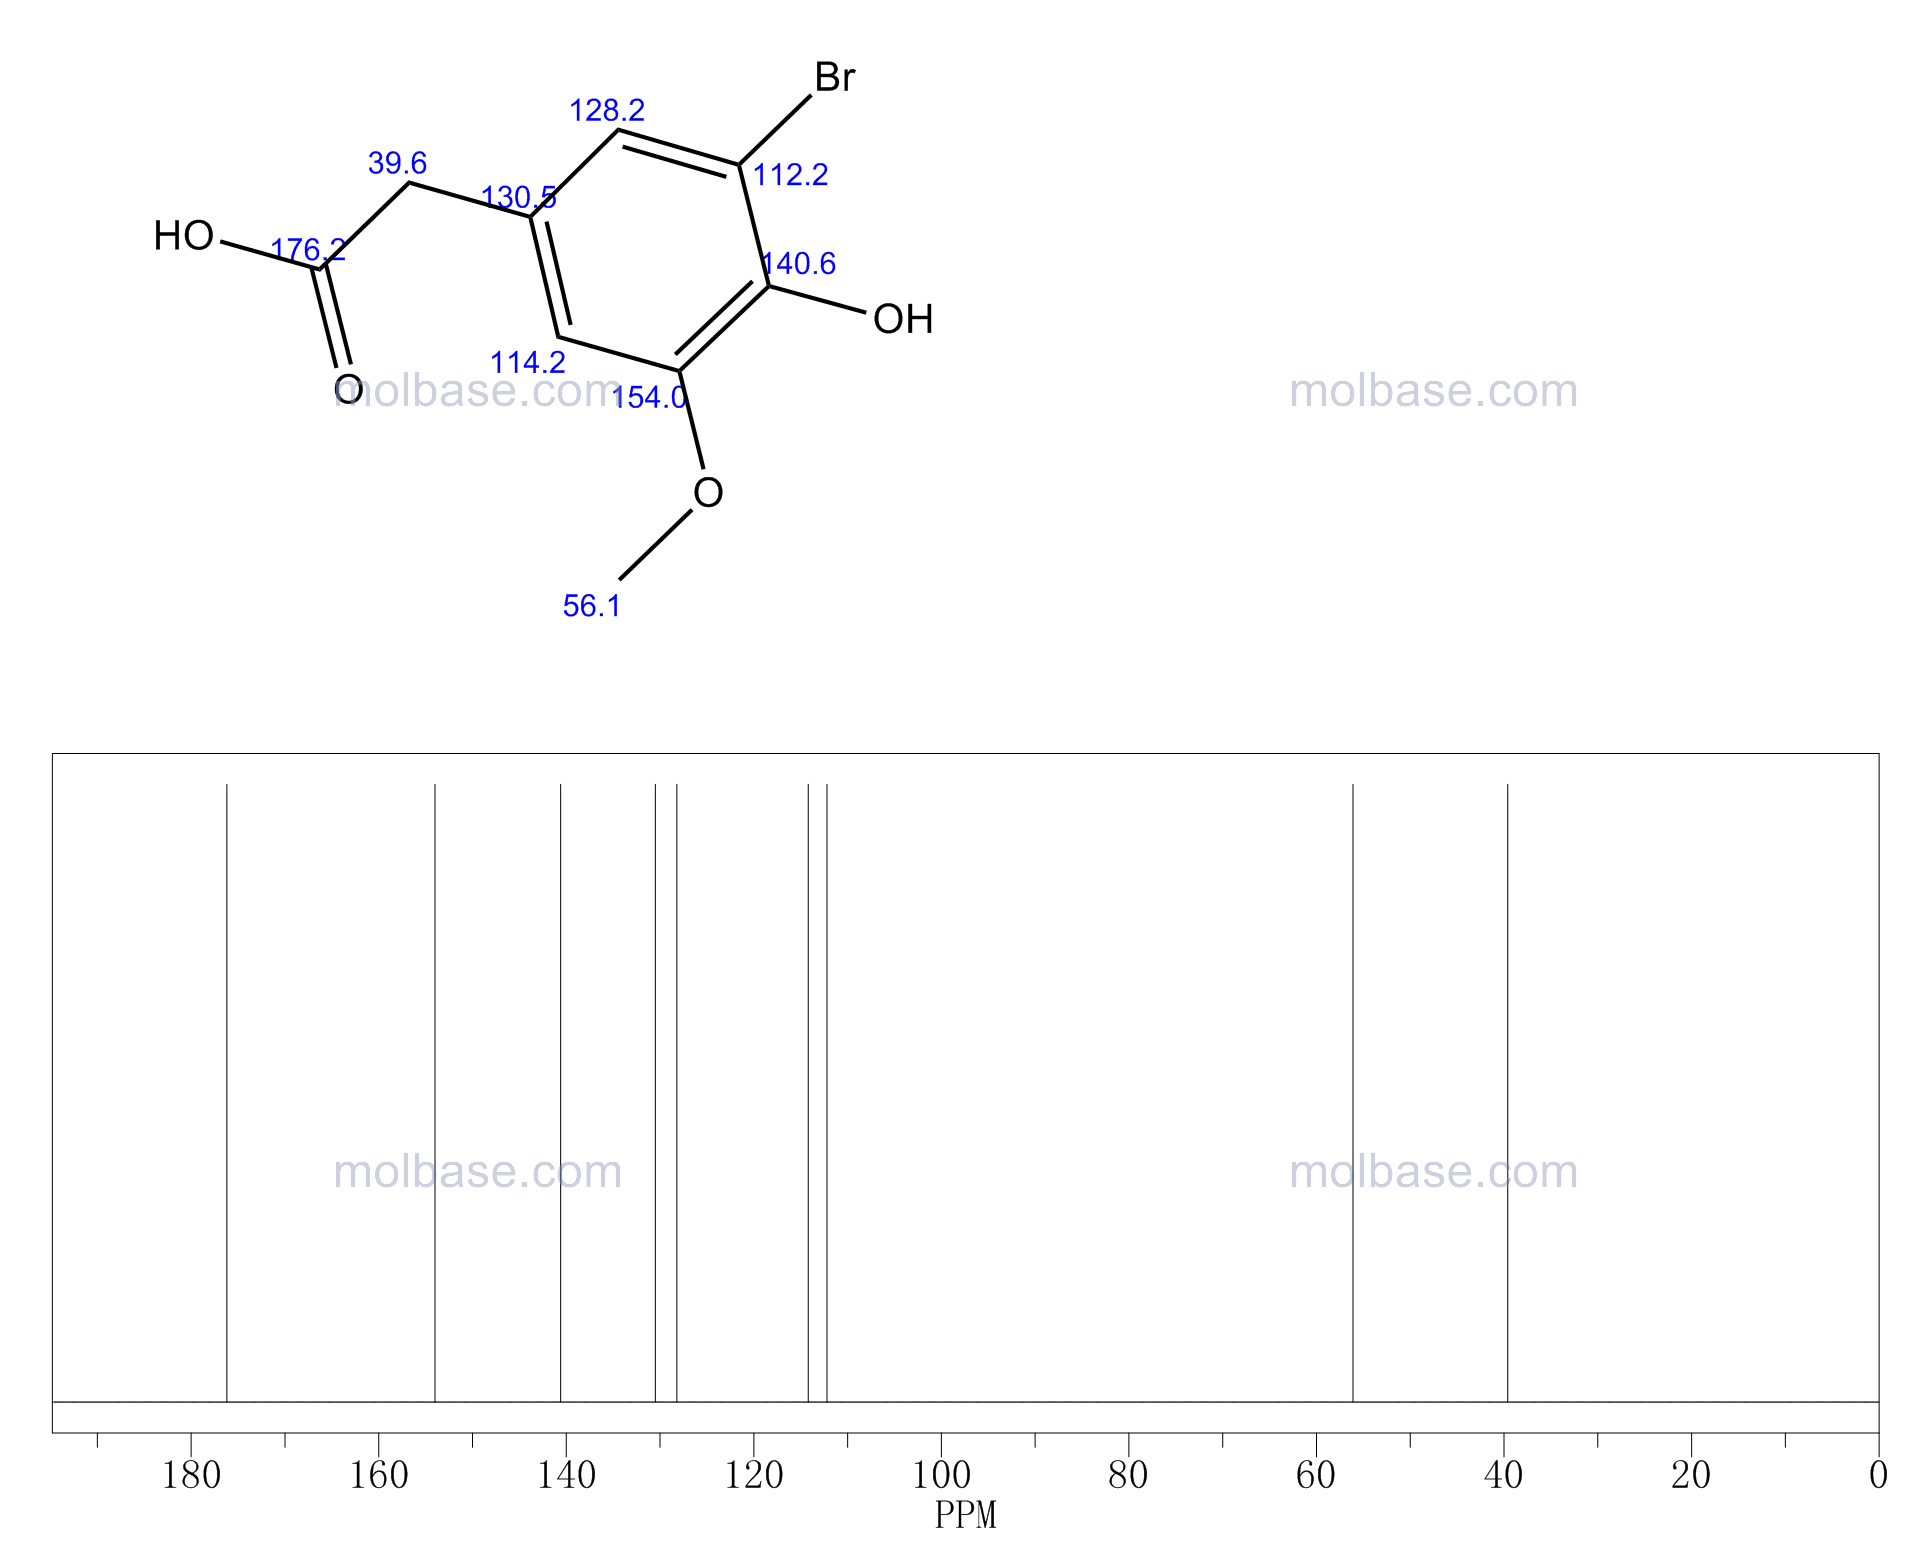 3-Bromo-4-hydroxy-5-methoxyphenylacetic acid NMR spectra analysis, Chemical CAS NO. 206559-42-4 NMR spectral analysis, 3-Bromo-4-hydroxy-5-methoxyphenylacetic acid C-NMR spectrum